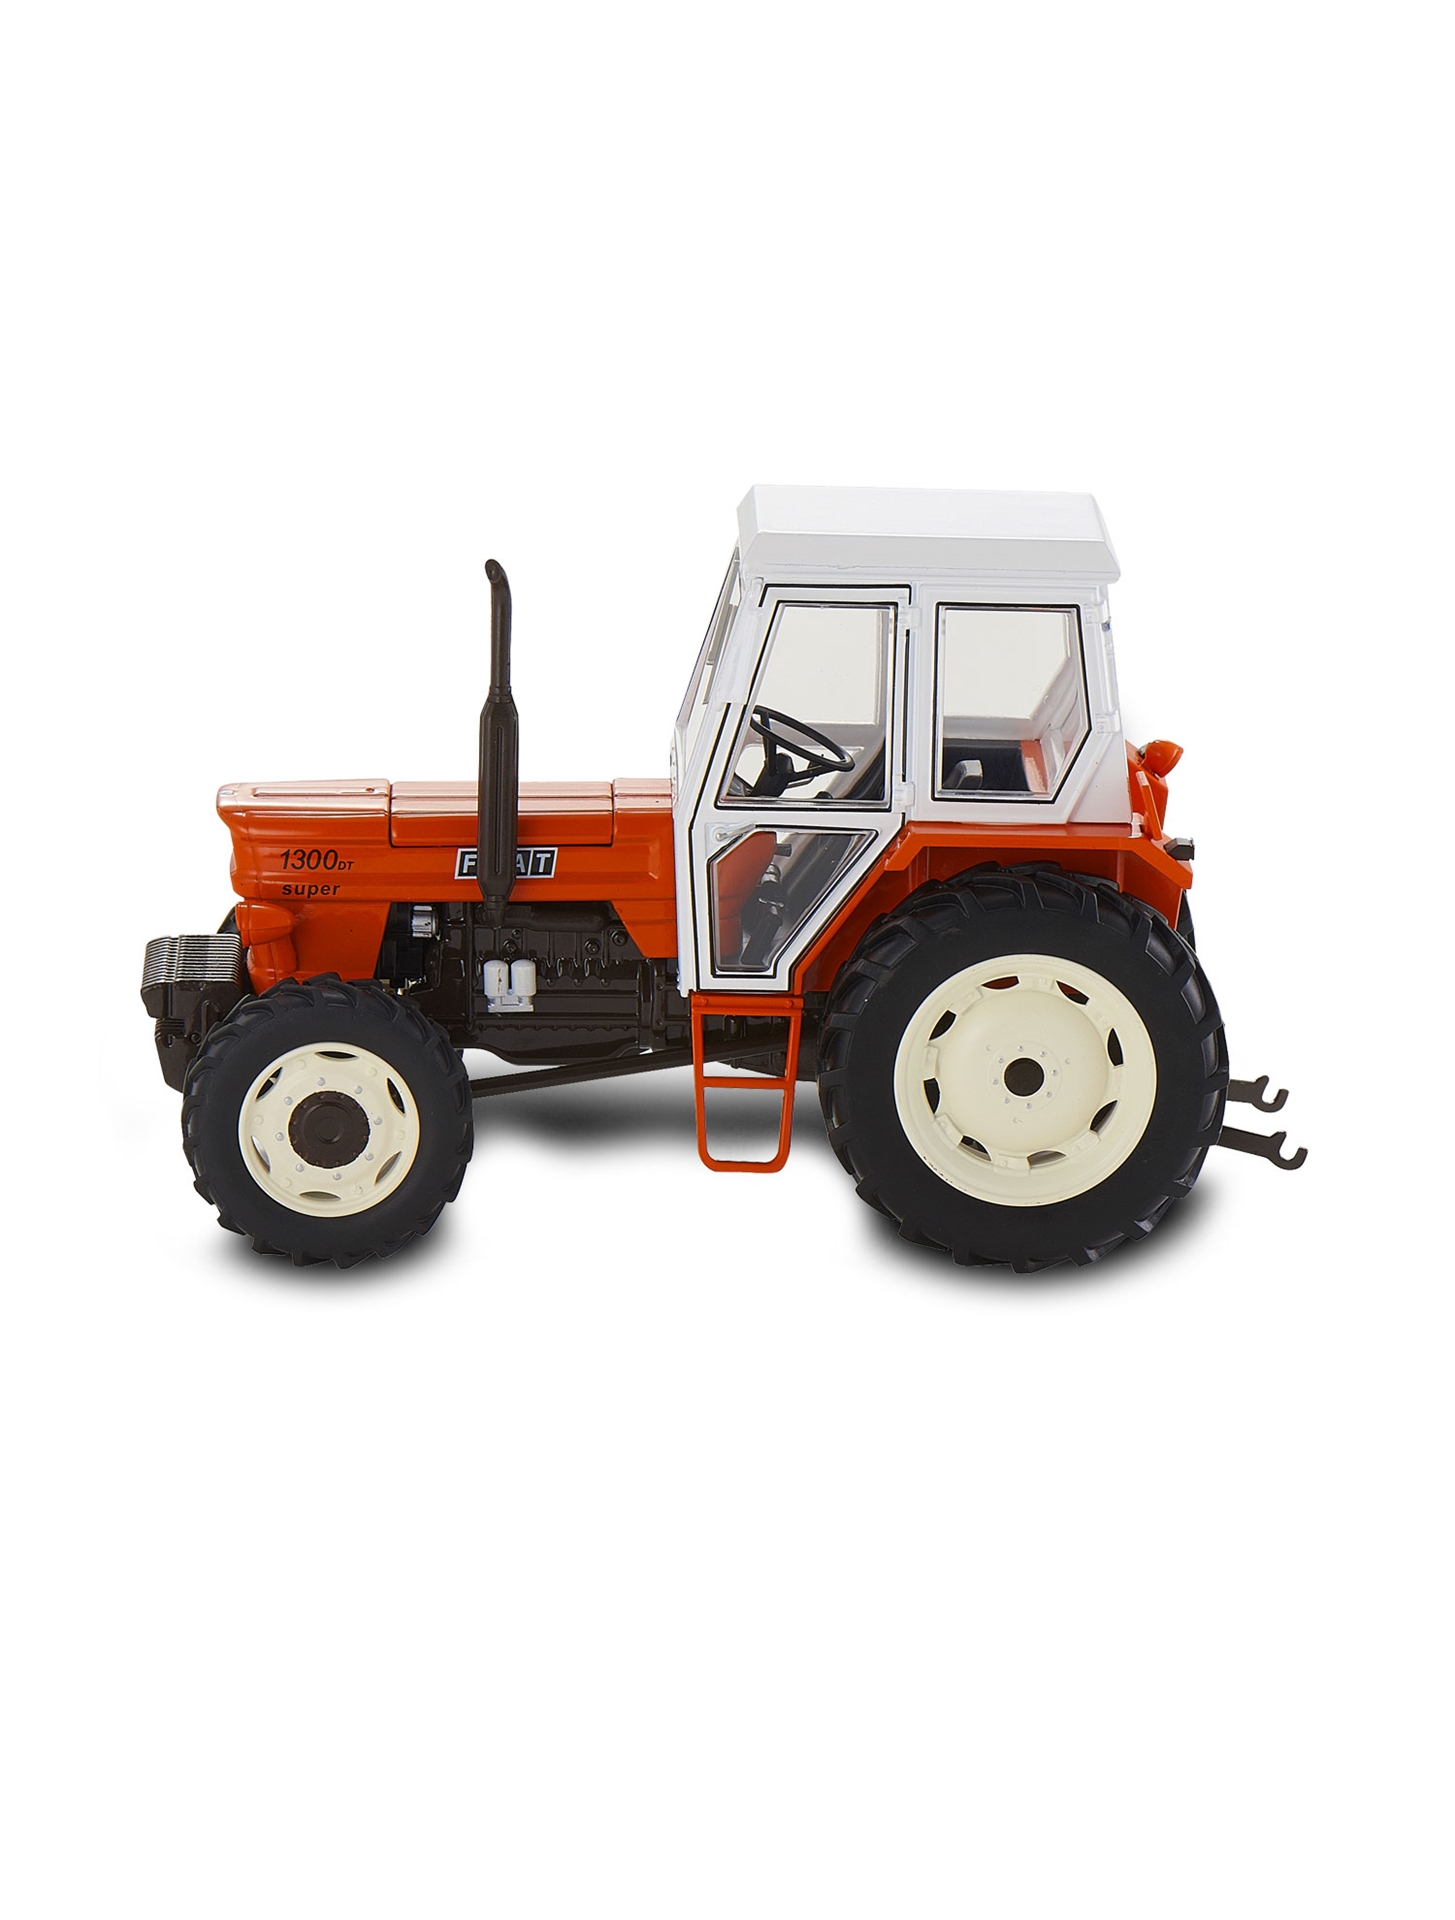 Tractor, Fiat 1300 DT Super, 1:32